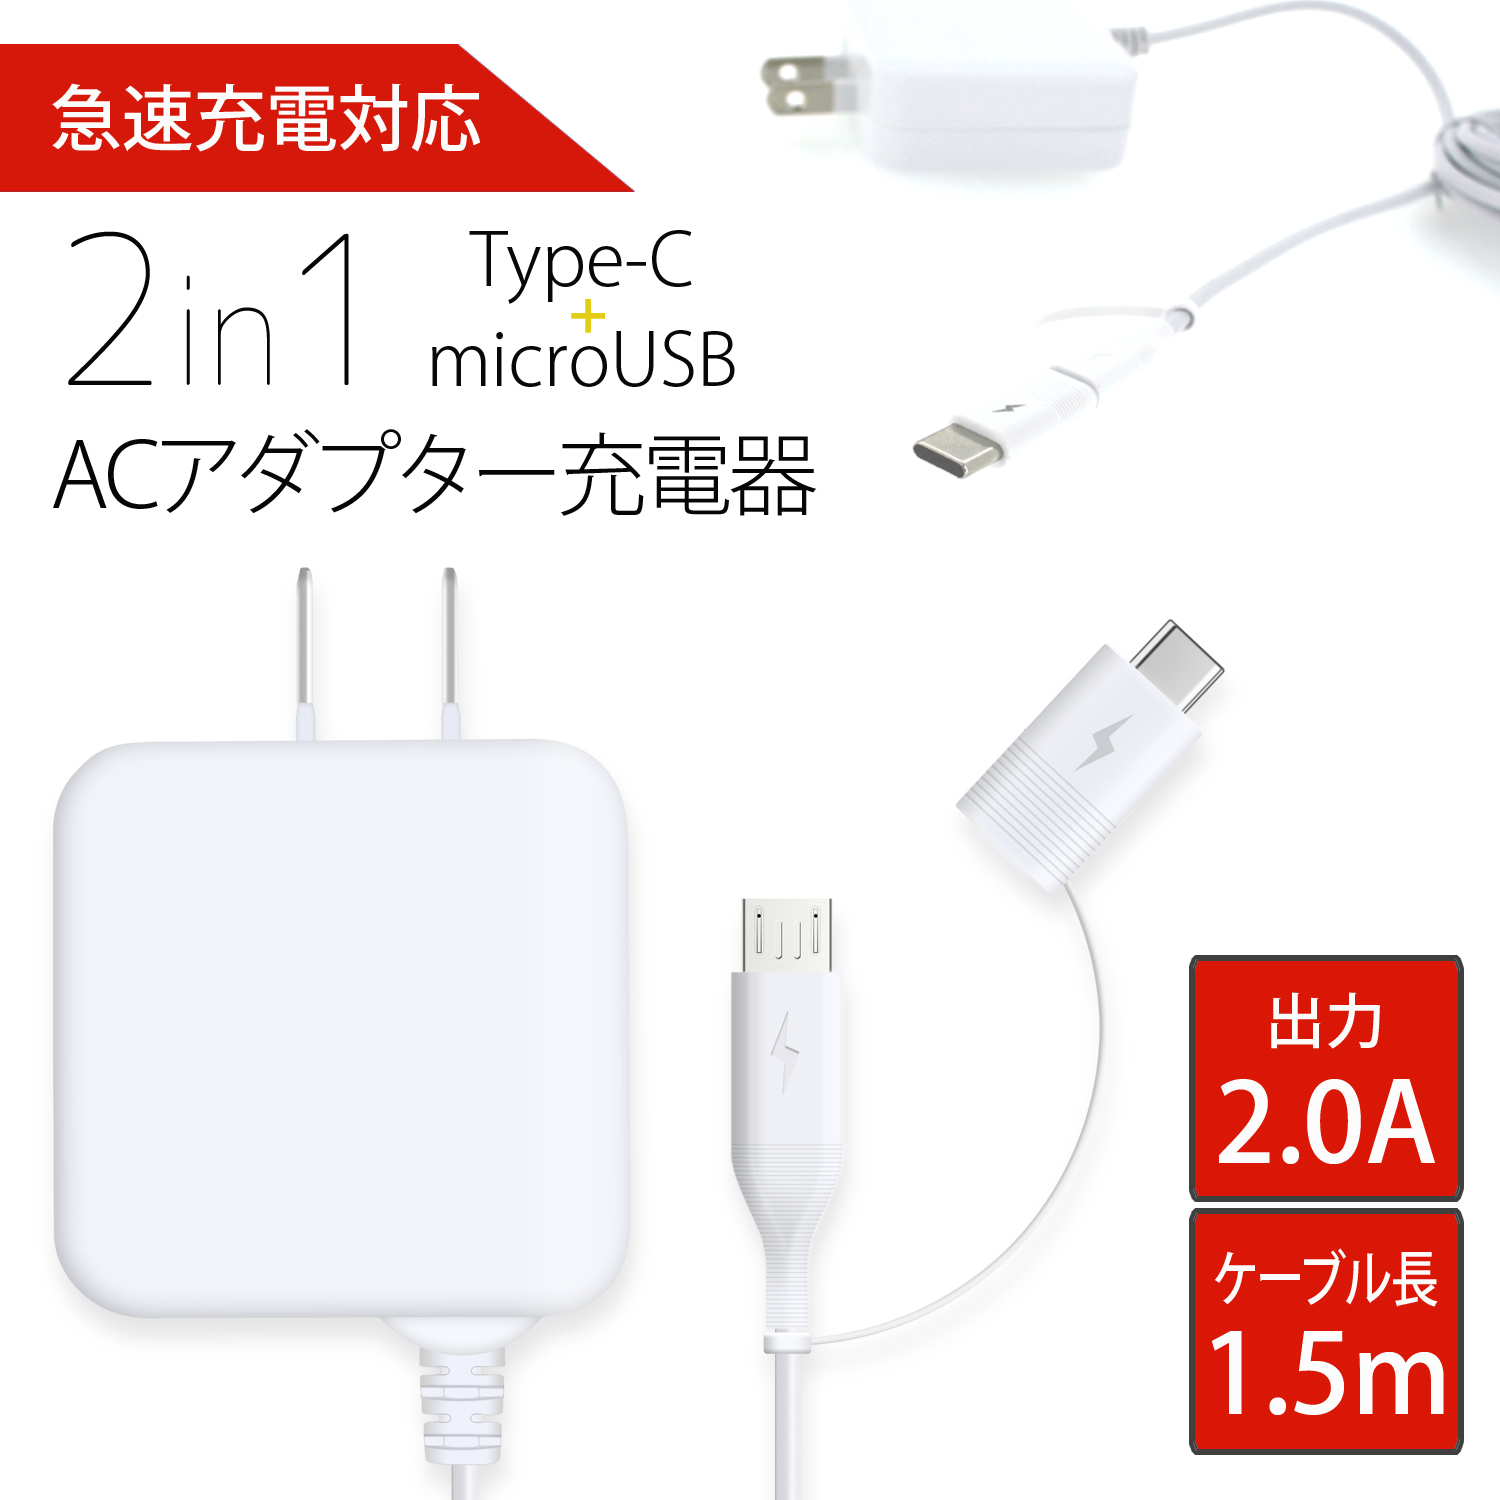 Xperia XZ1 SO-01K 【送料無料】 2in1 Type-C microUSB ACアダプター 充電器 急速充電 対応 2.0A 1.5m スマホ タブレット AC充電器 家庭用コンセント タイプC タイプc コンパクト